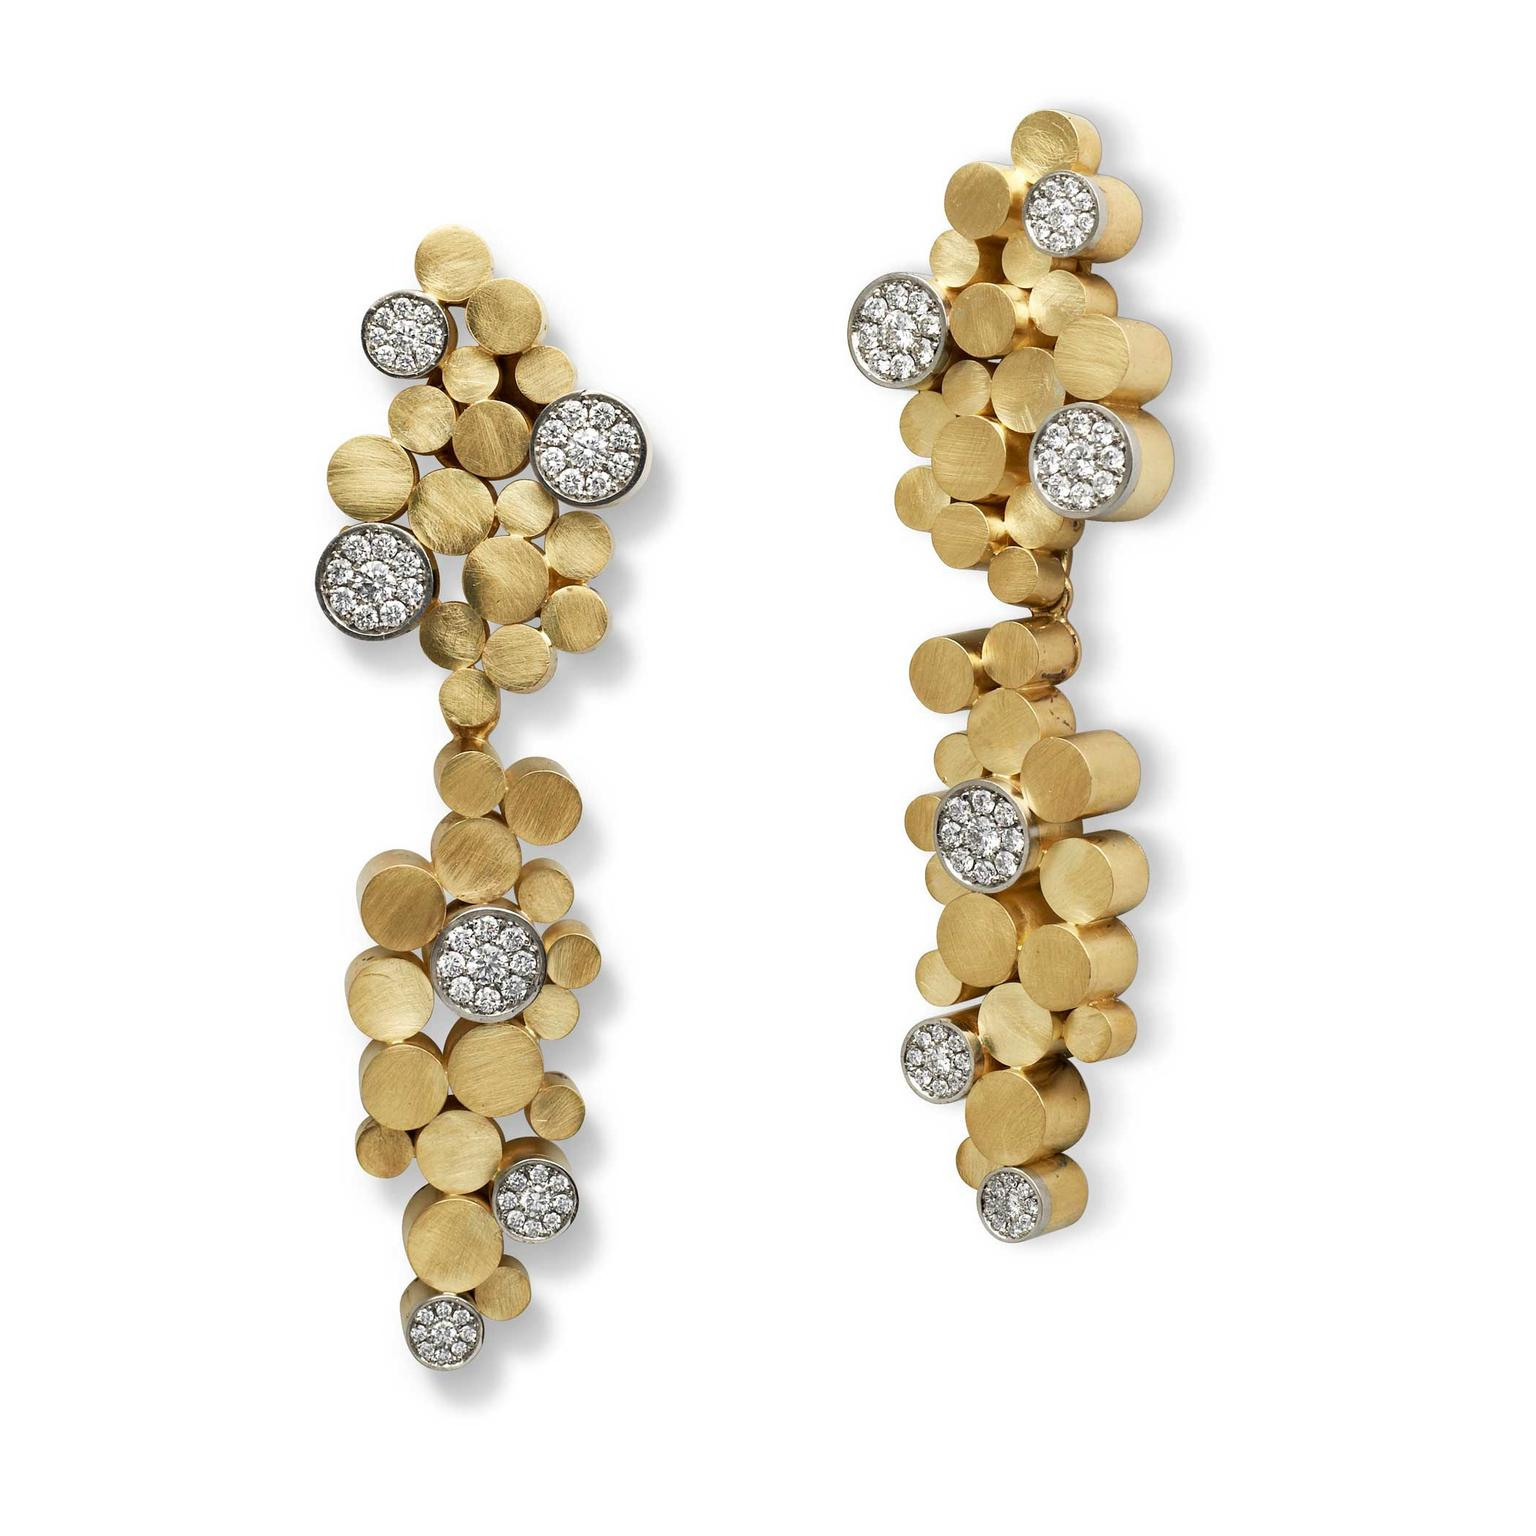 Grima yellow gold and diamond tube earrings with detachable drops